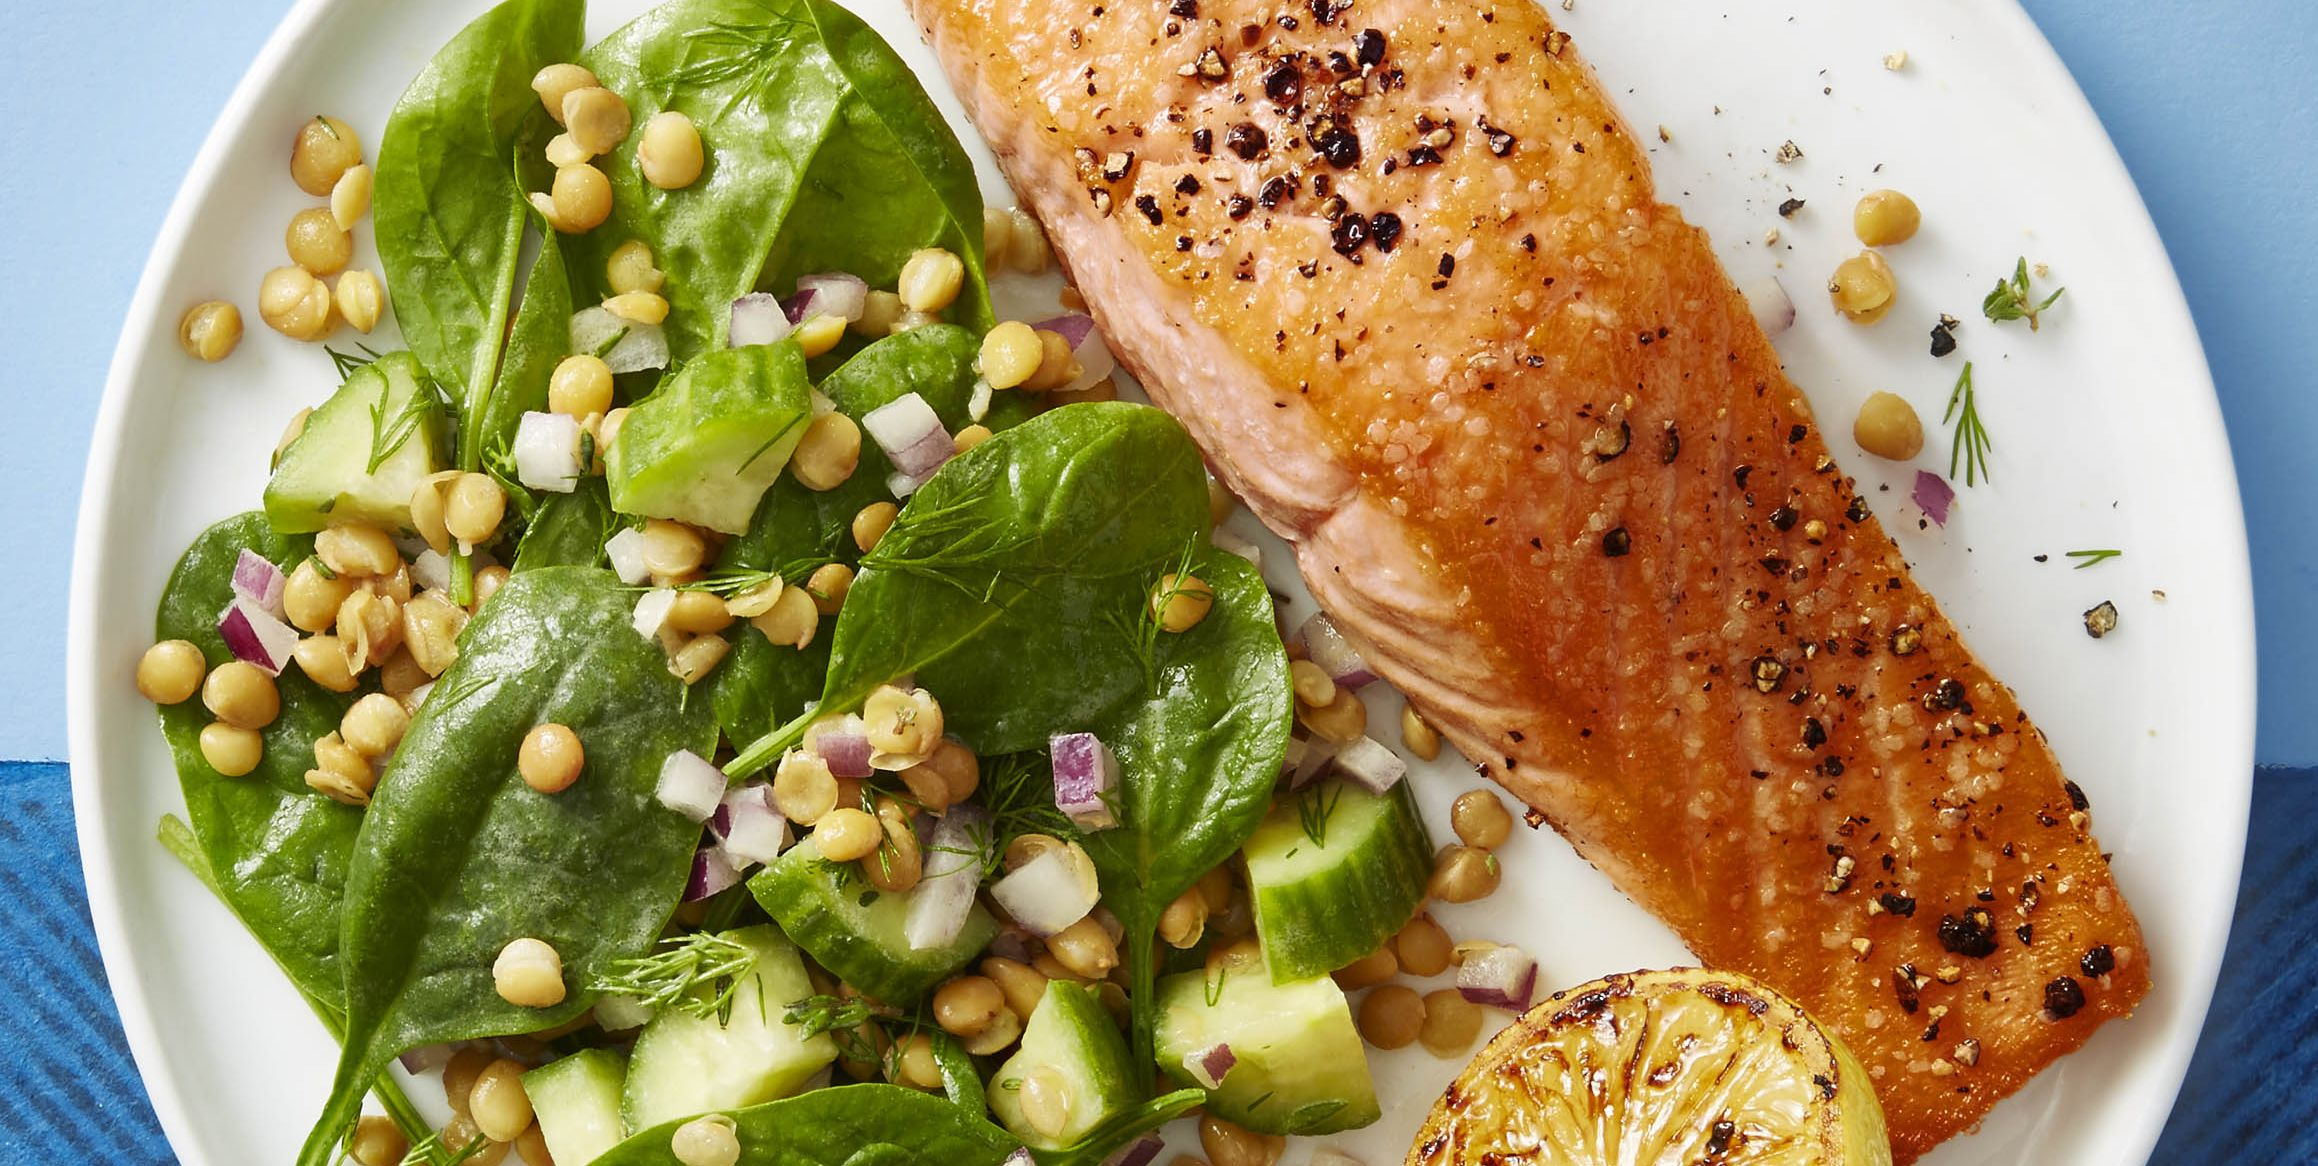 30 Easy Salmon Recipes From Baked To Grilled How To Cook Salmon